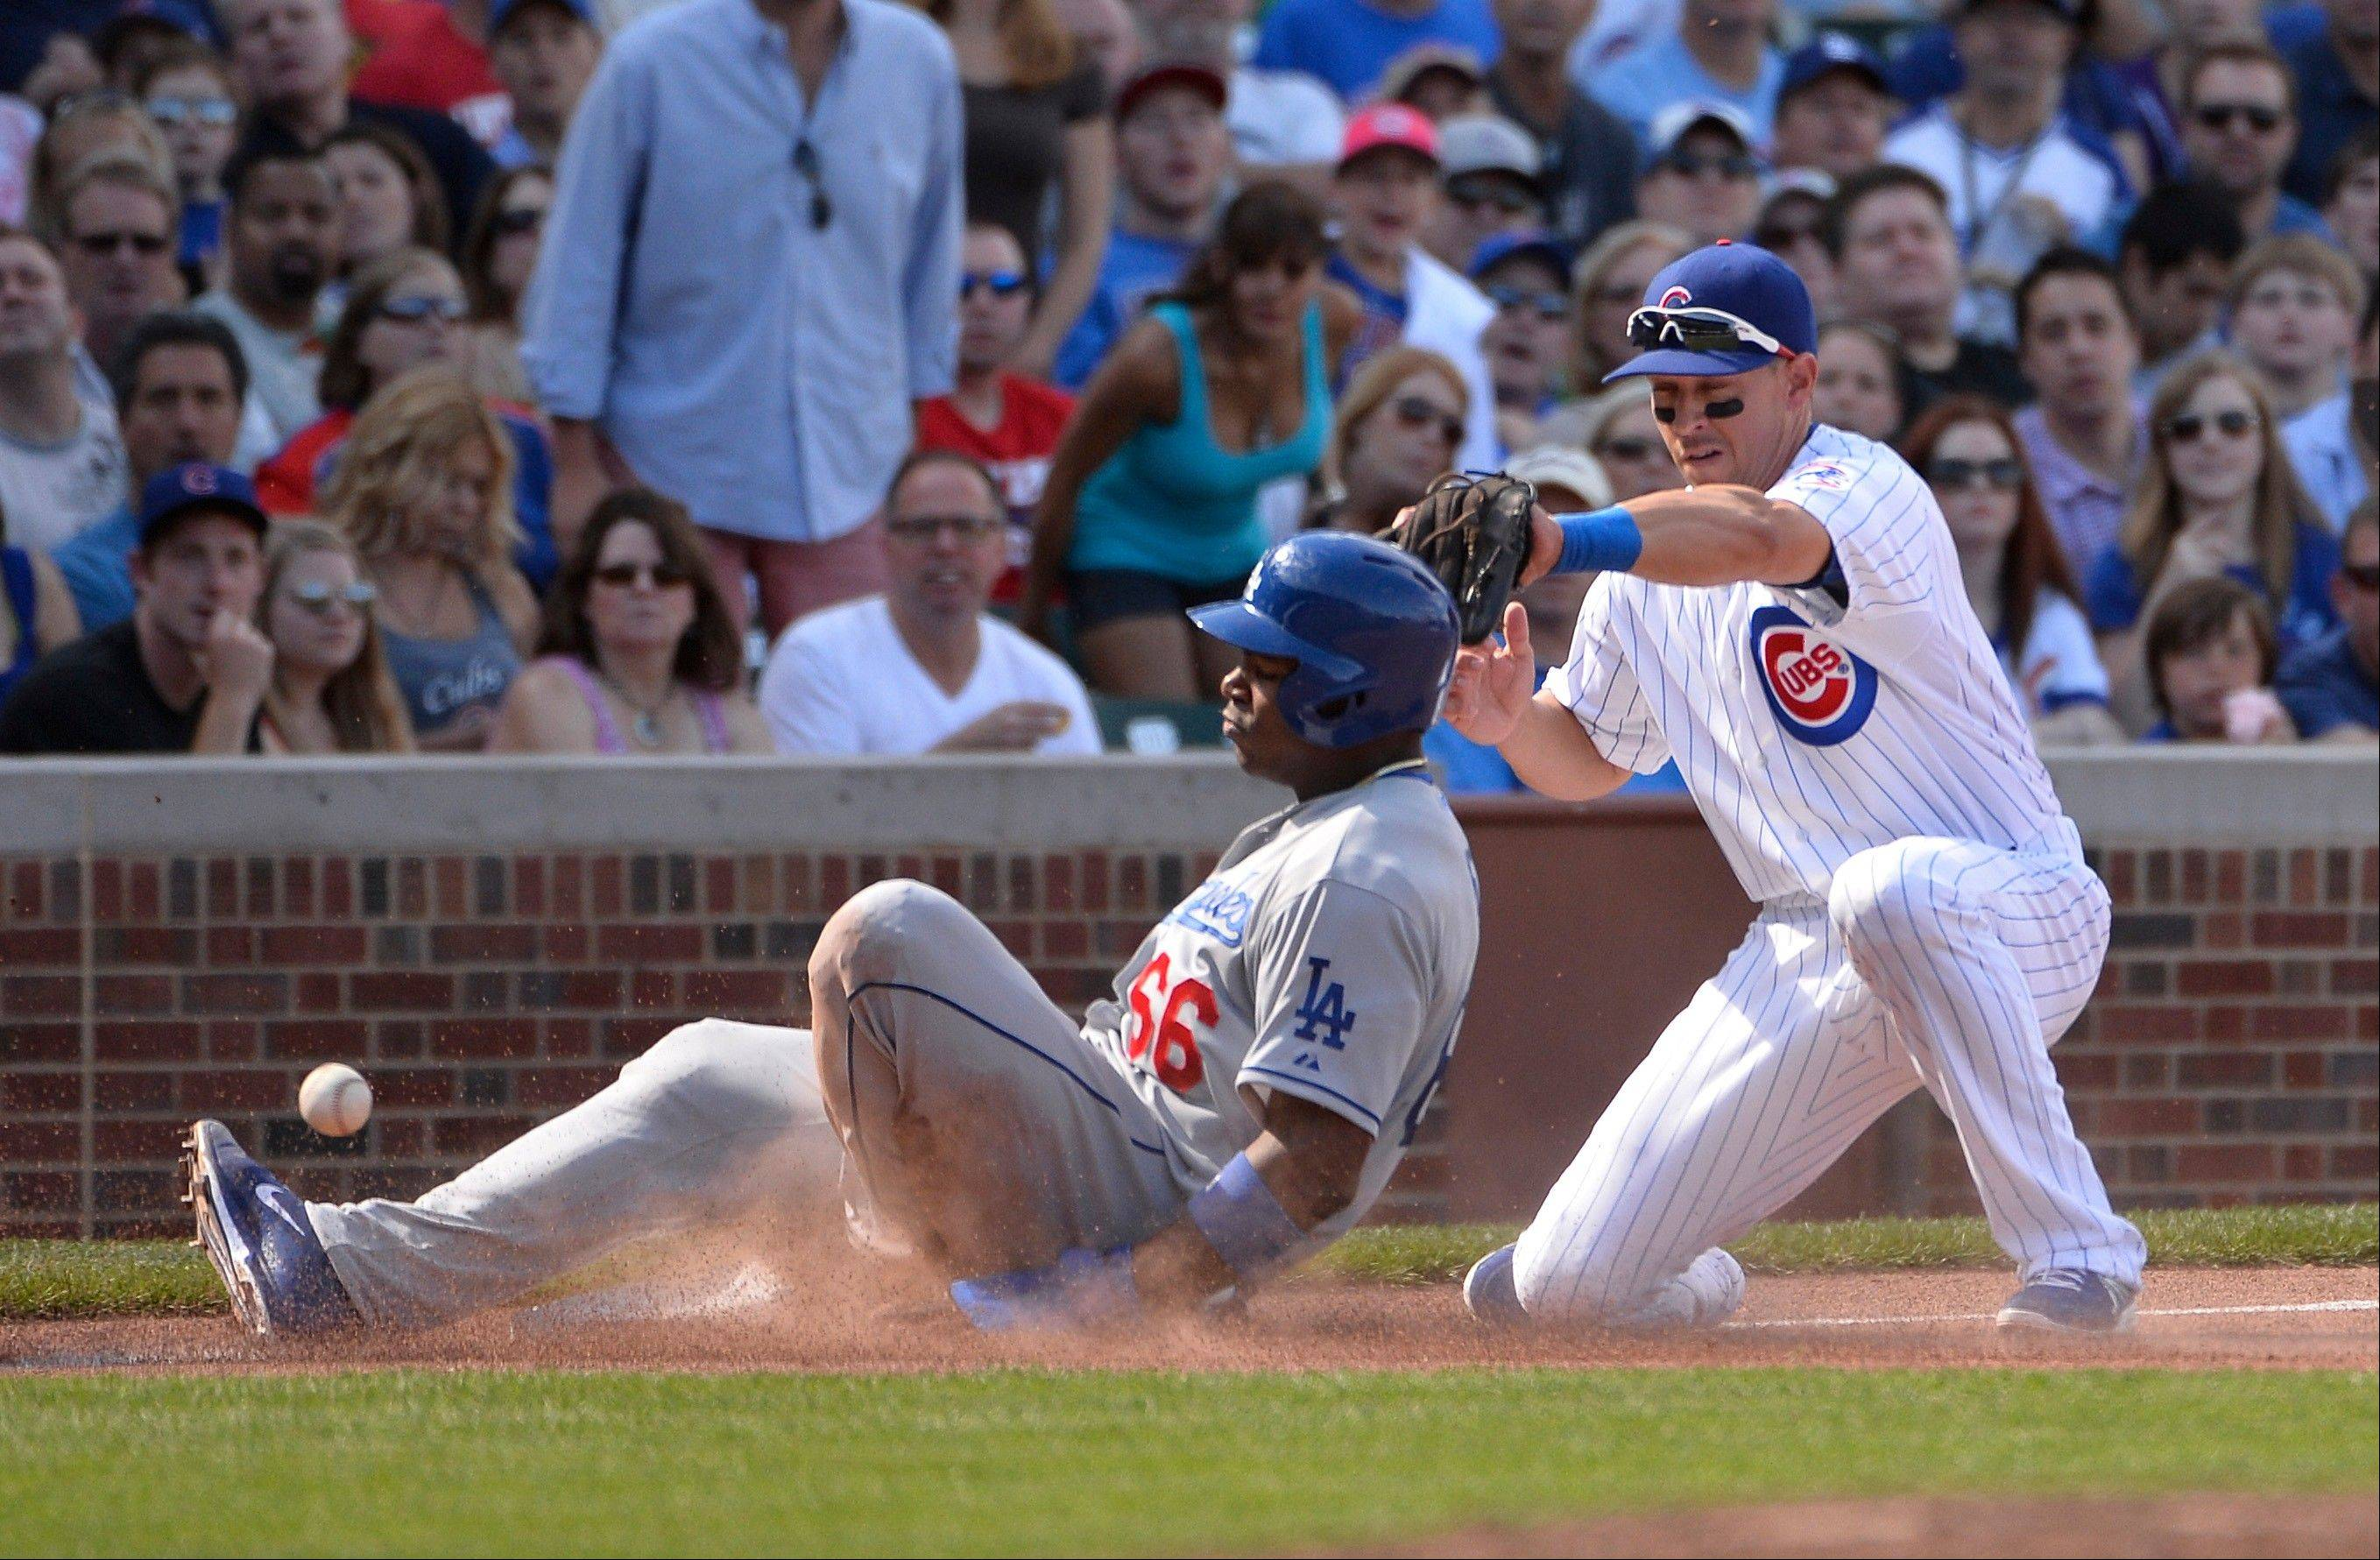 Los Angeles Dodgers' Yasiel Puig, left, slides safely into third base, advancing from first base on a single hit by teammate Andre Ethier, as Chicago Cubs third baseman Cody Ransom tries to make a play during the third inning of a baseball game, Saturday, Aug. 3, 2013, in Chicago. (AP Photo/Brian Kersey)